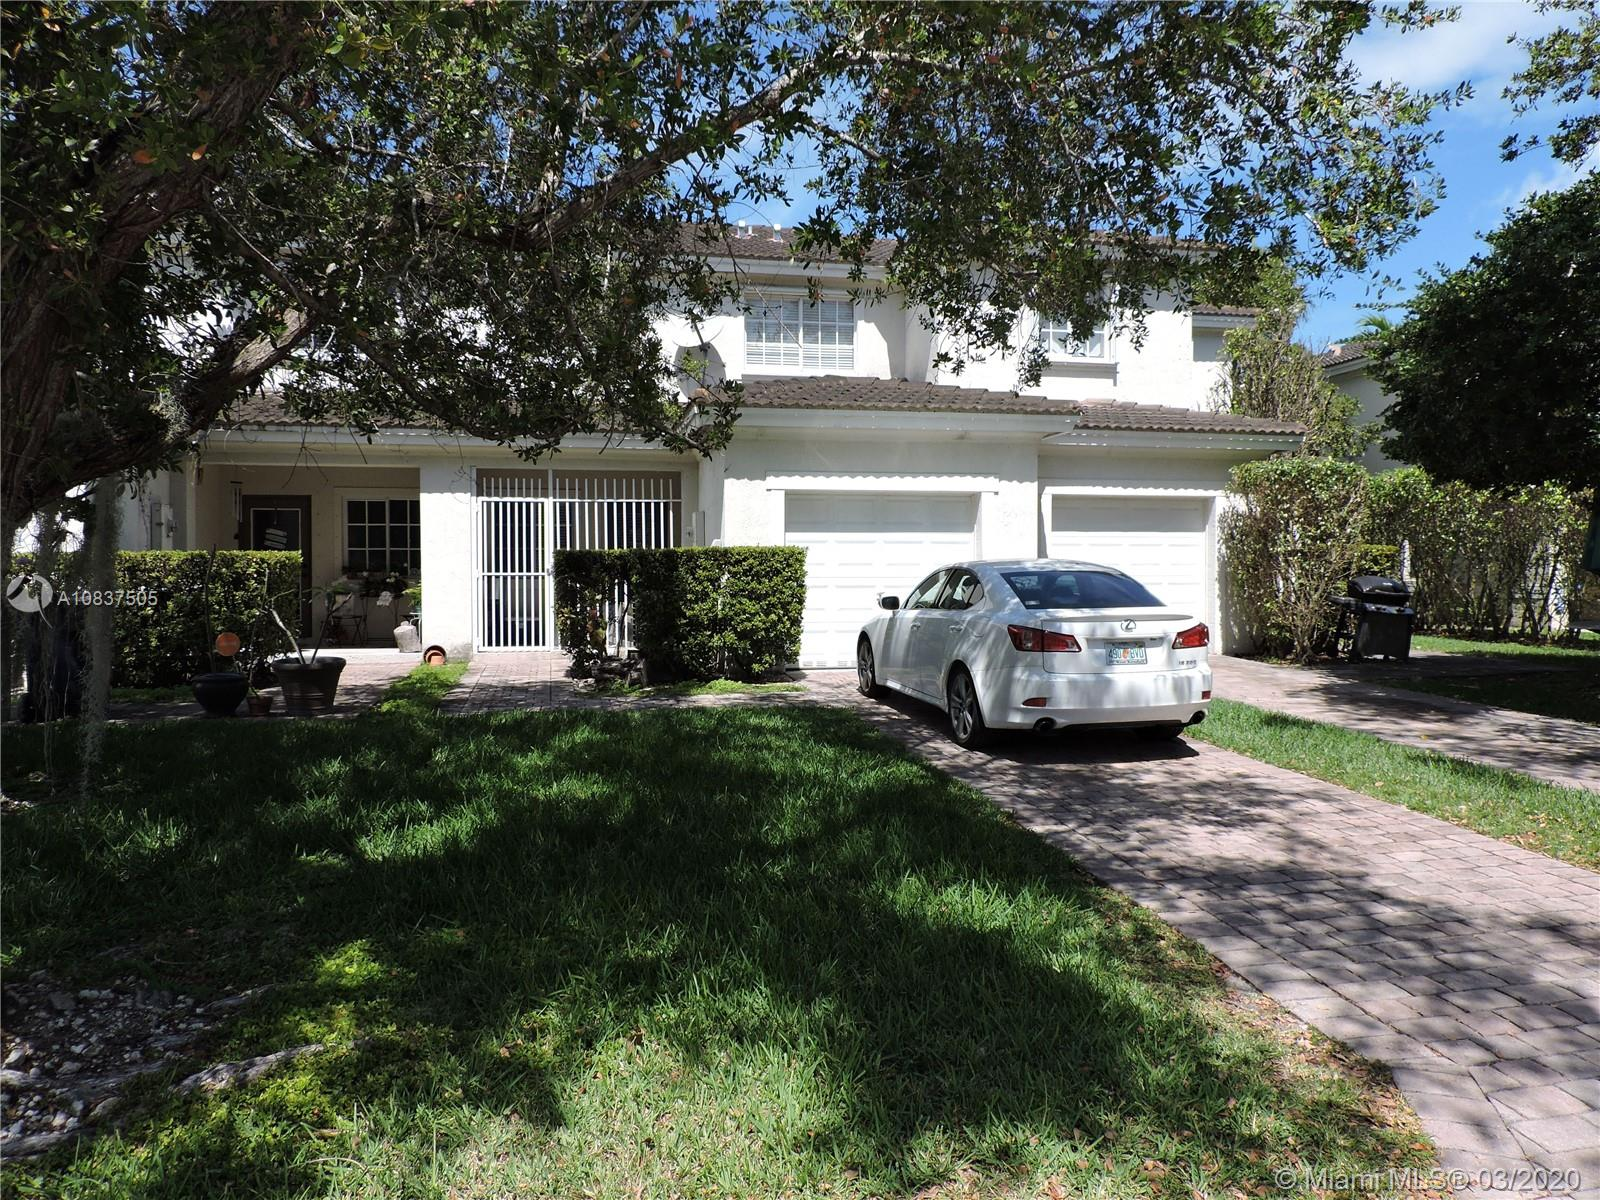 14246 SW 272nd St #14246, Homestead, FL 33032 - Homestead, FL real estate listing